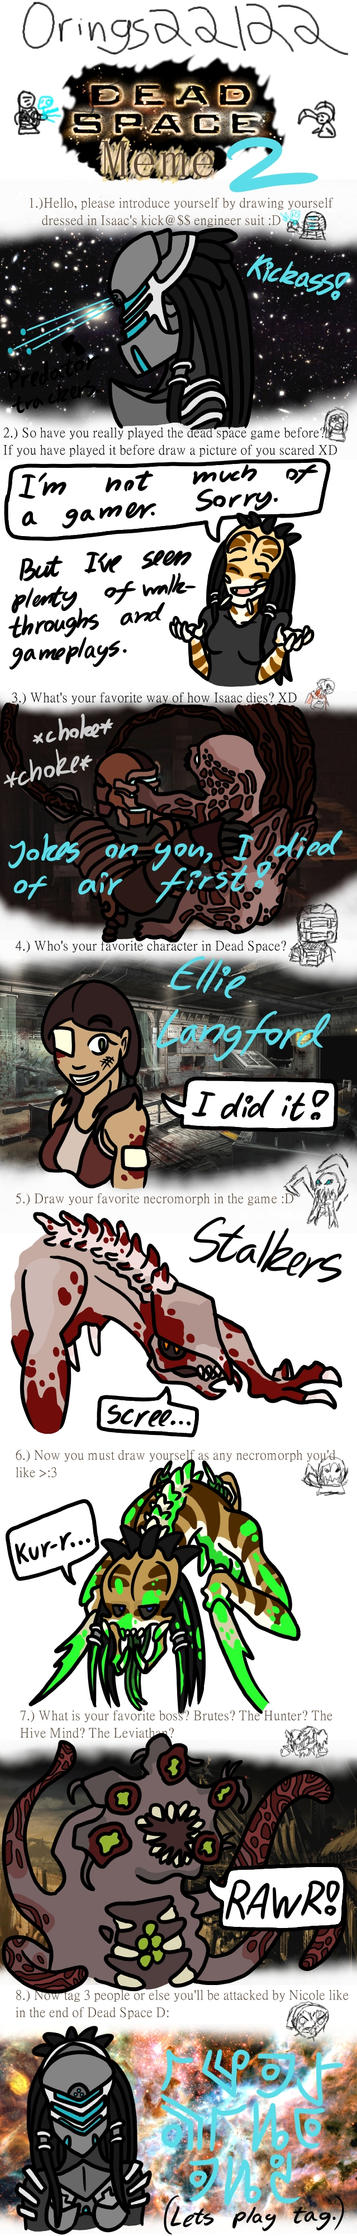 78a103317df2662a7b0ccd368a7128bf d38ck2k dead space meme by xenopreddragon on deviantart